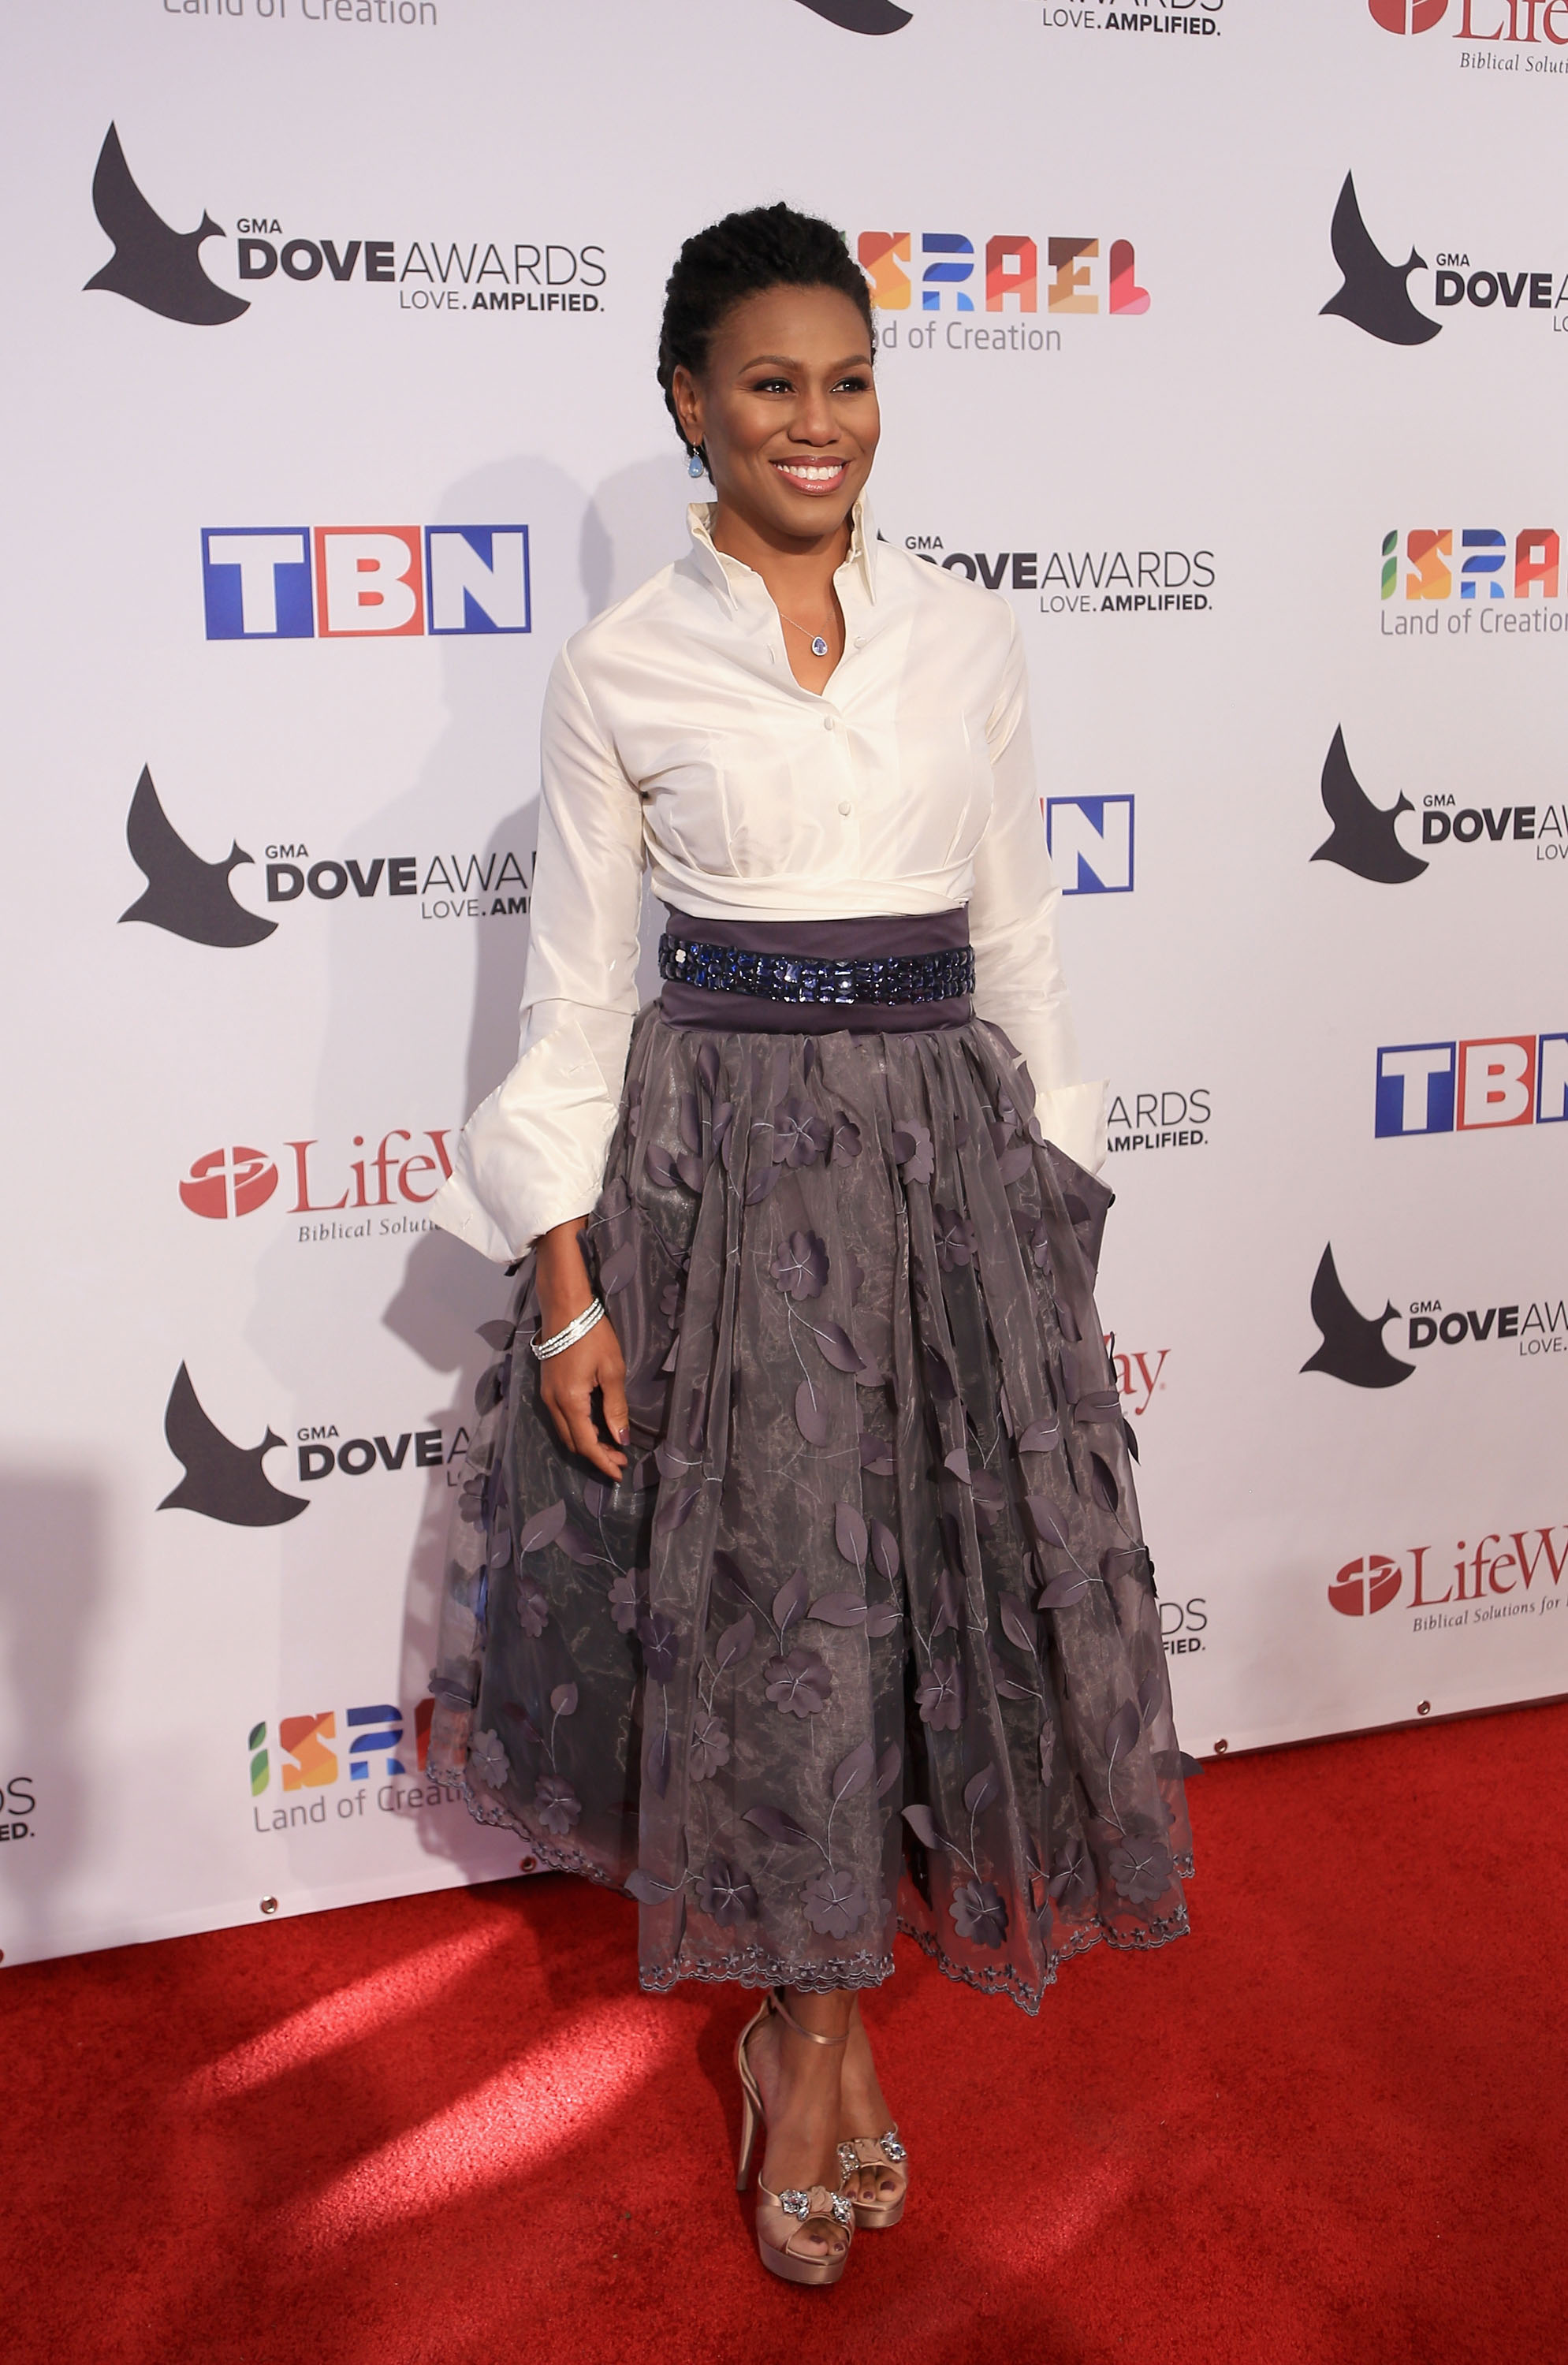 47th Annual GMA Dove Awards - Arrivals